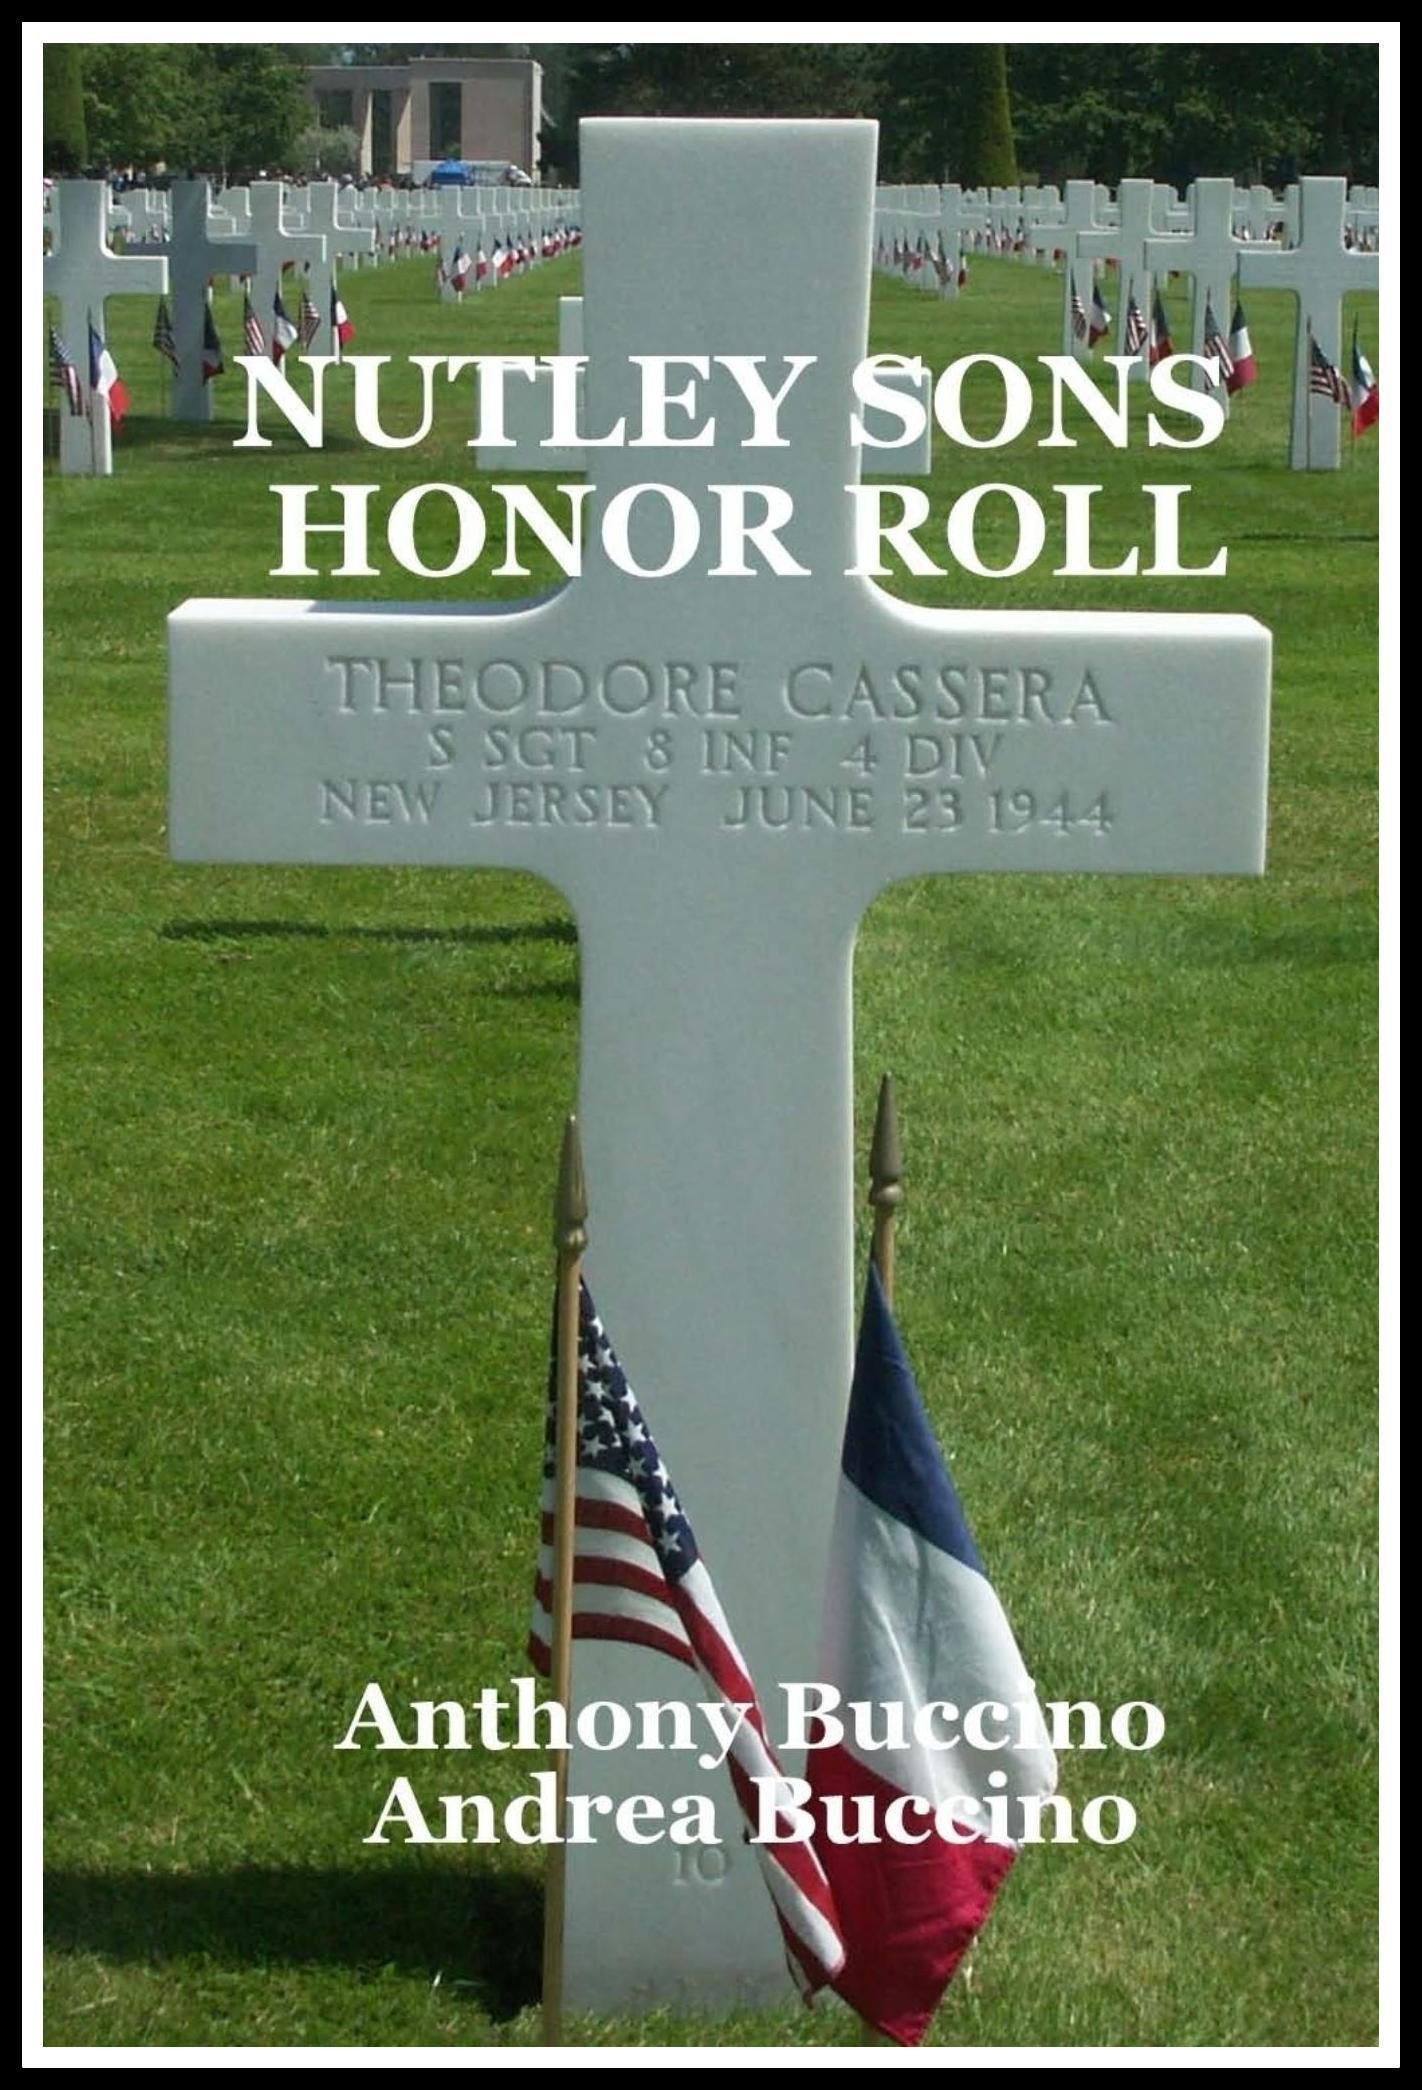 Nutley Sons Honor Roll, Remembering the Men Who Paid for Our Freedom